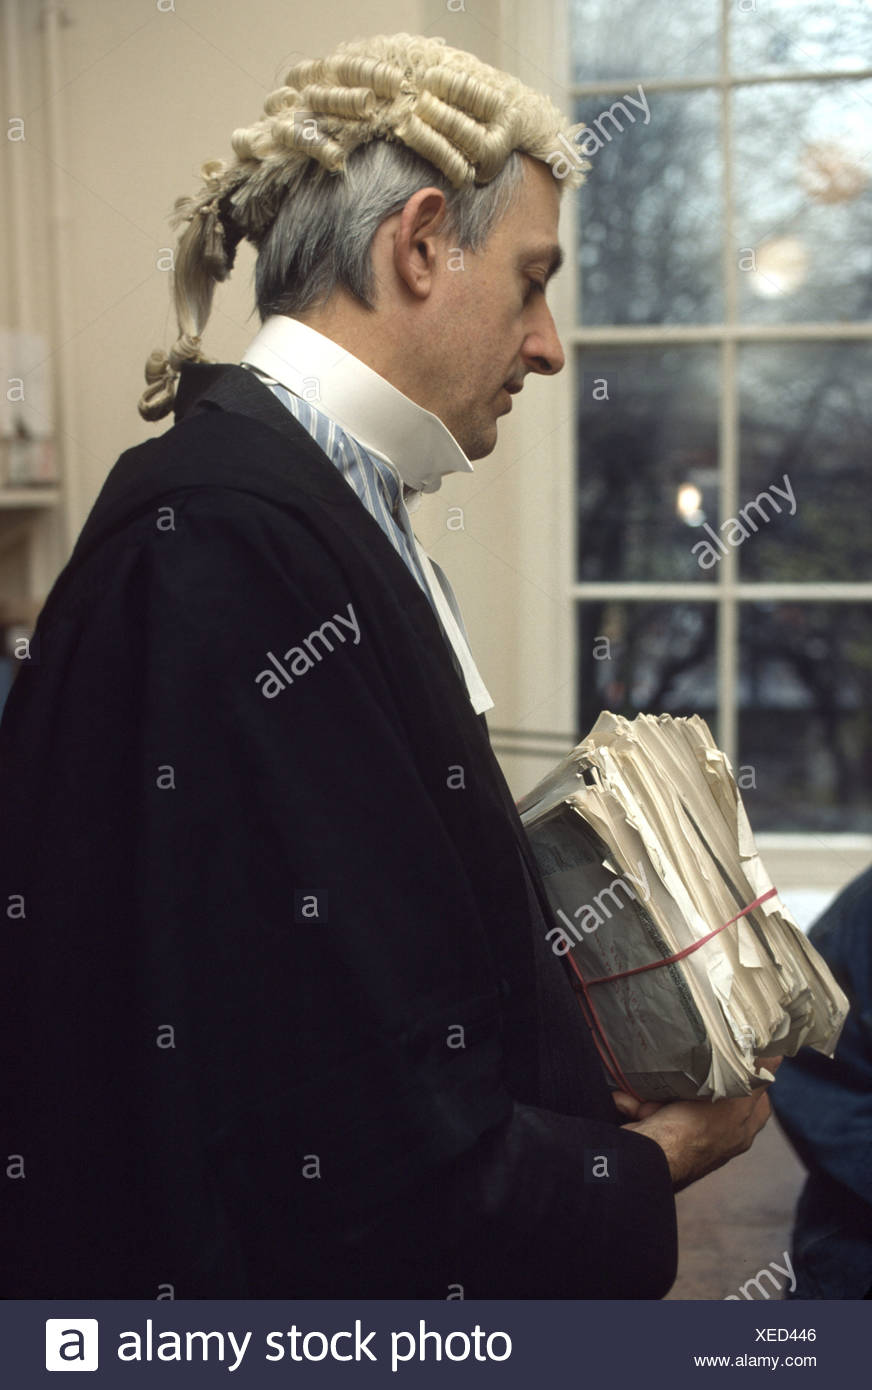 Barrister In Wig Gown Male Stock Photos & Barrister In Wig Gown Male ...